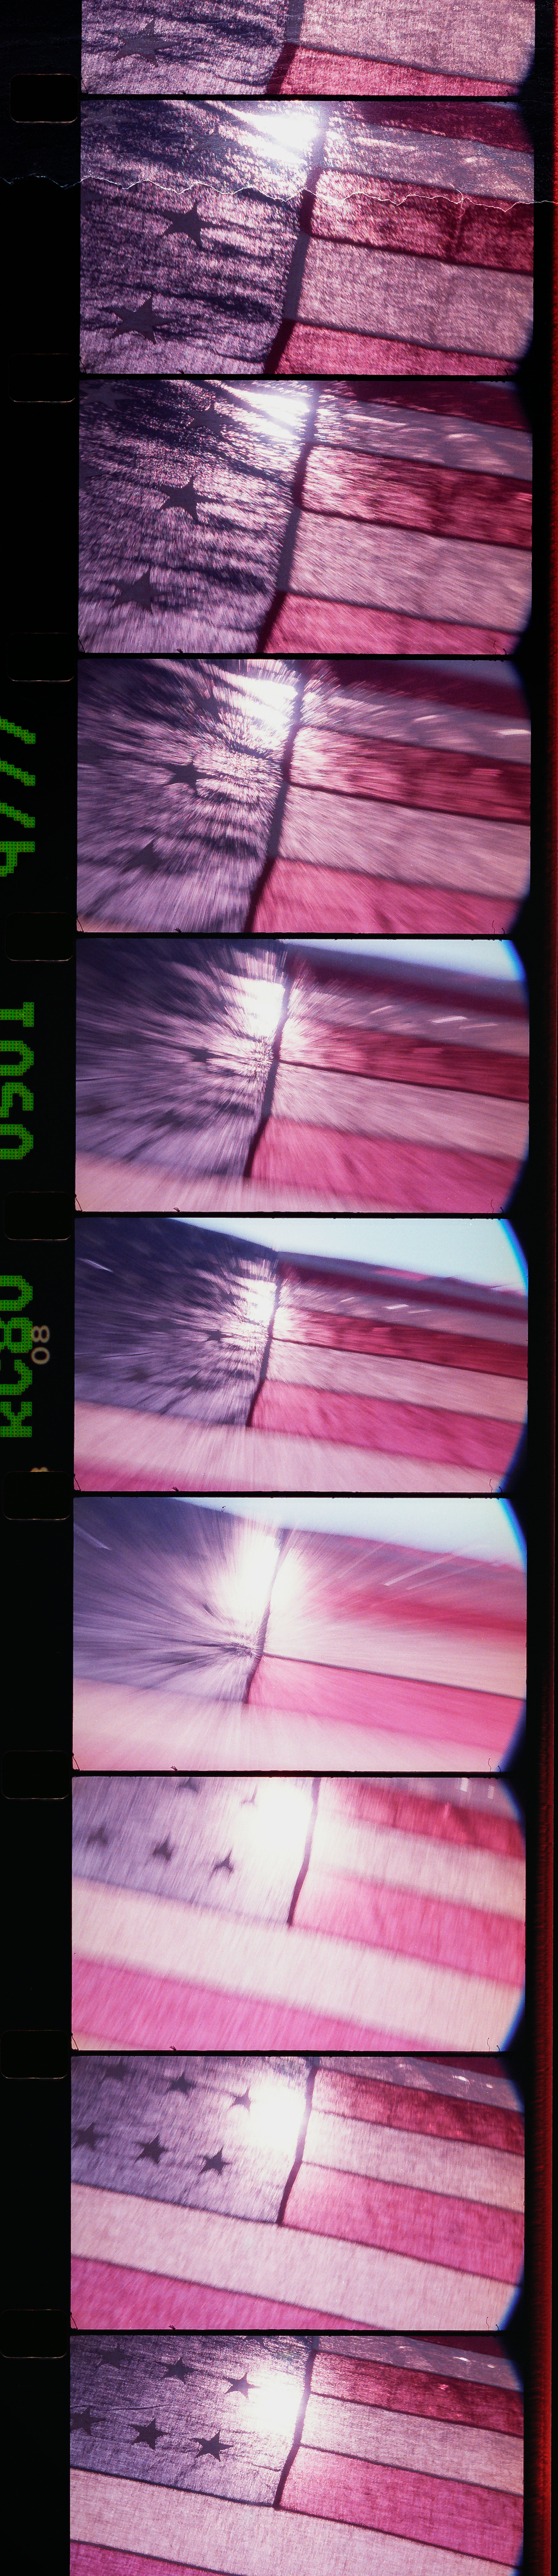 16mm-polo-flag-zoom-out-16-copy-2.jpg